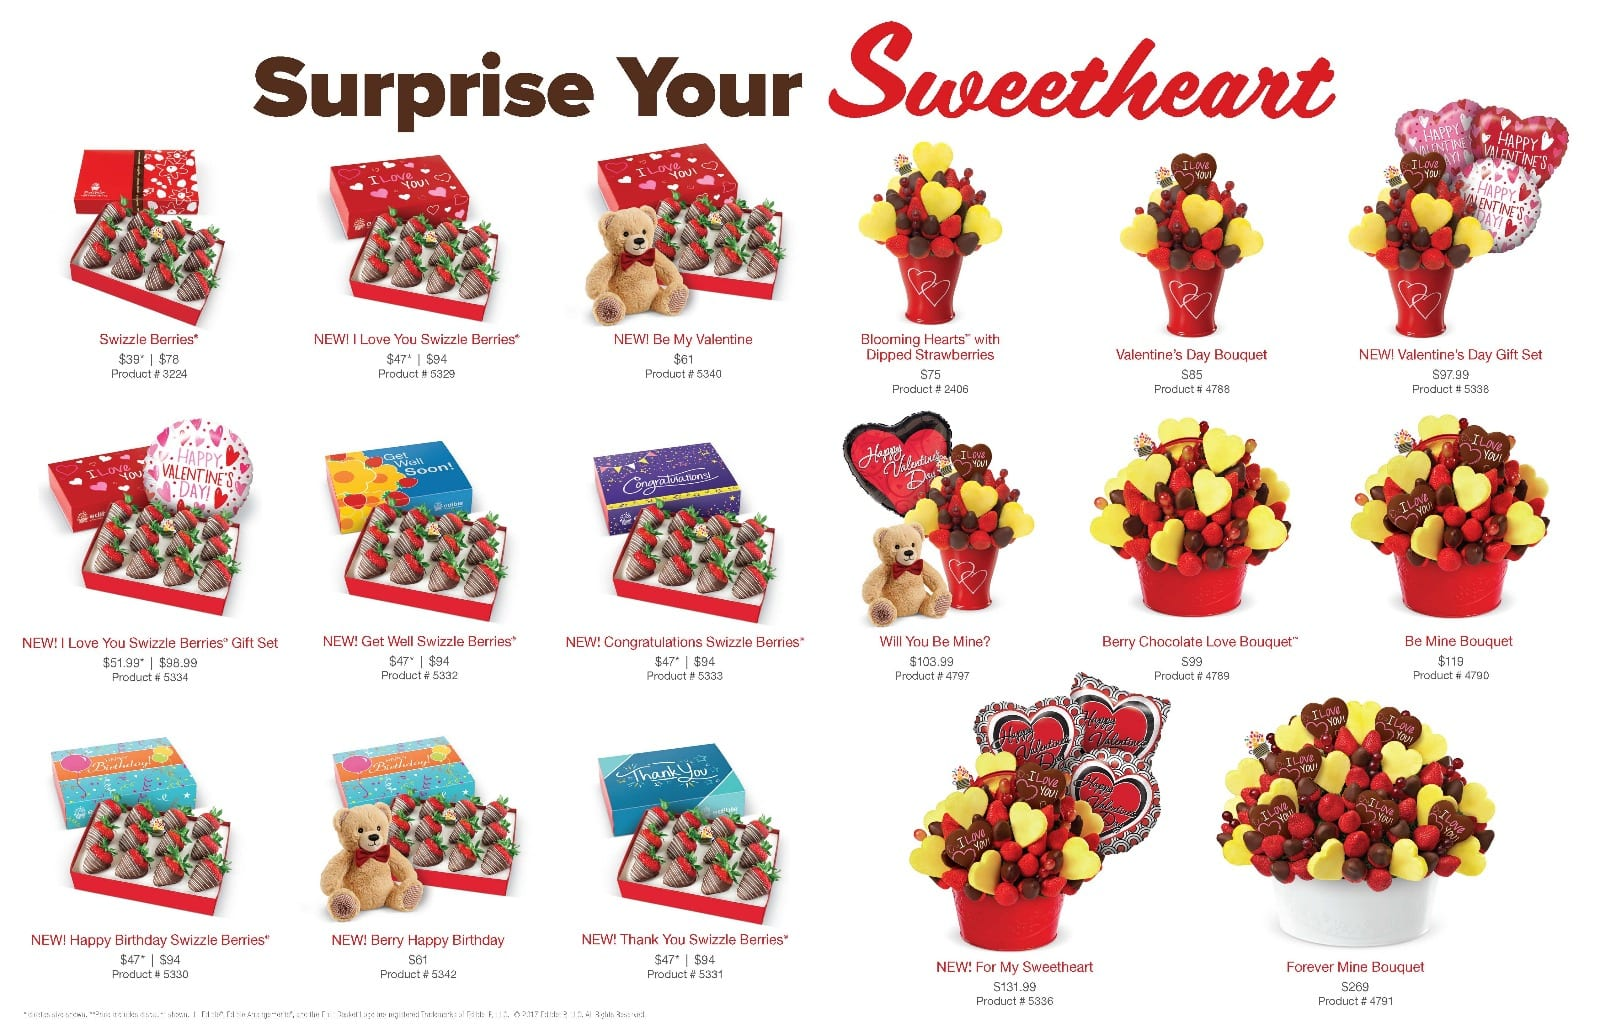 Edible Arrangement: Valentine's Day Gifts - 25% Off Gift Basket, chocolate covered strawberries & More